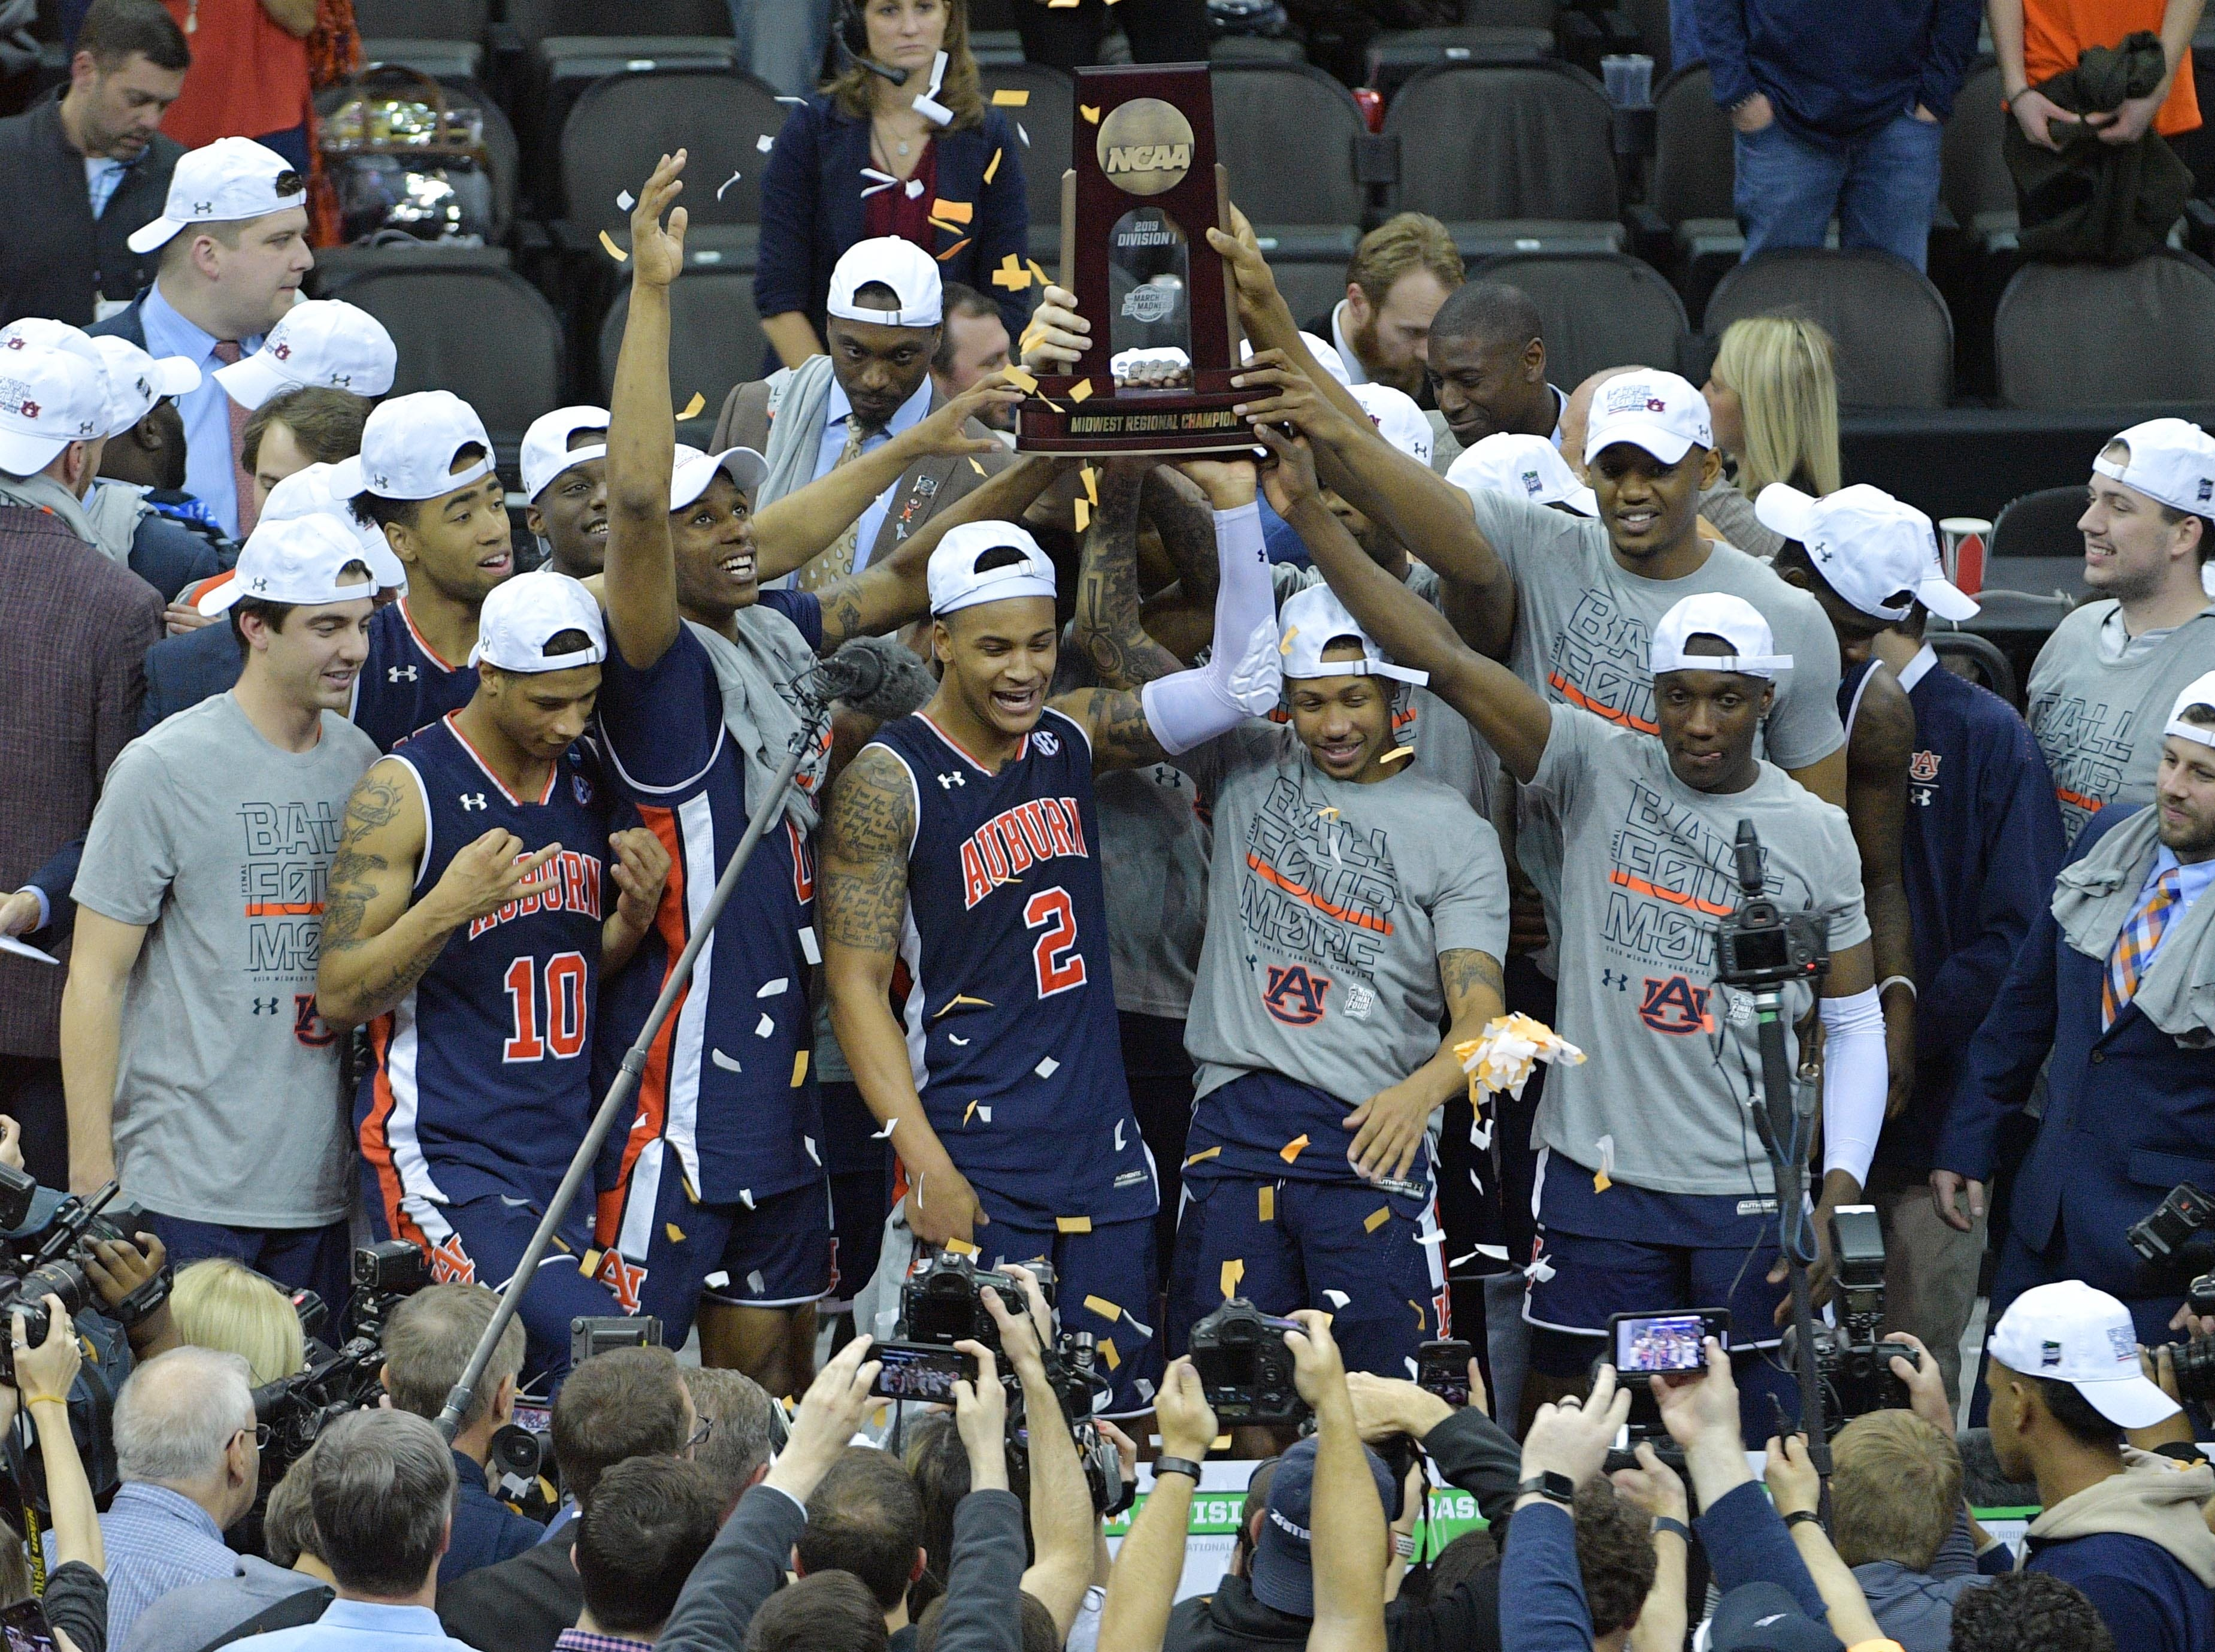 Mar 31, 2019; Kansas City, MO, United States; Auburn Tigers players celebrate with the trophy after defeating the Kentucky Wildcats in the championship game of the midwest regional of the 2019 NCAA Tournament at Sprint Center. Mandatory Credit: Denny Medley-USA TODAY Sports